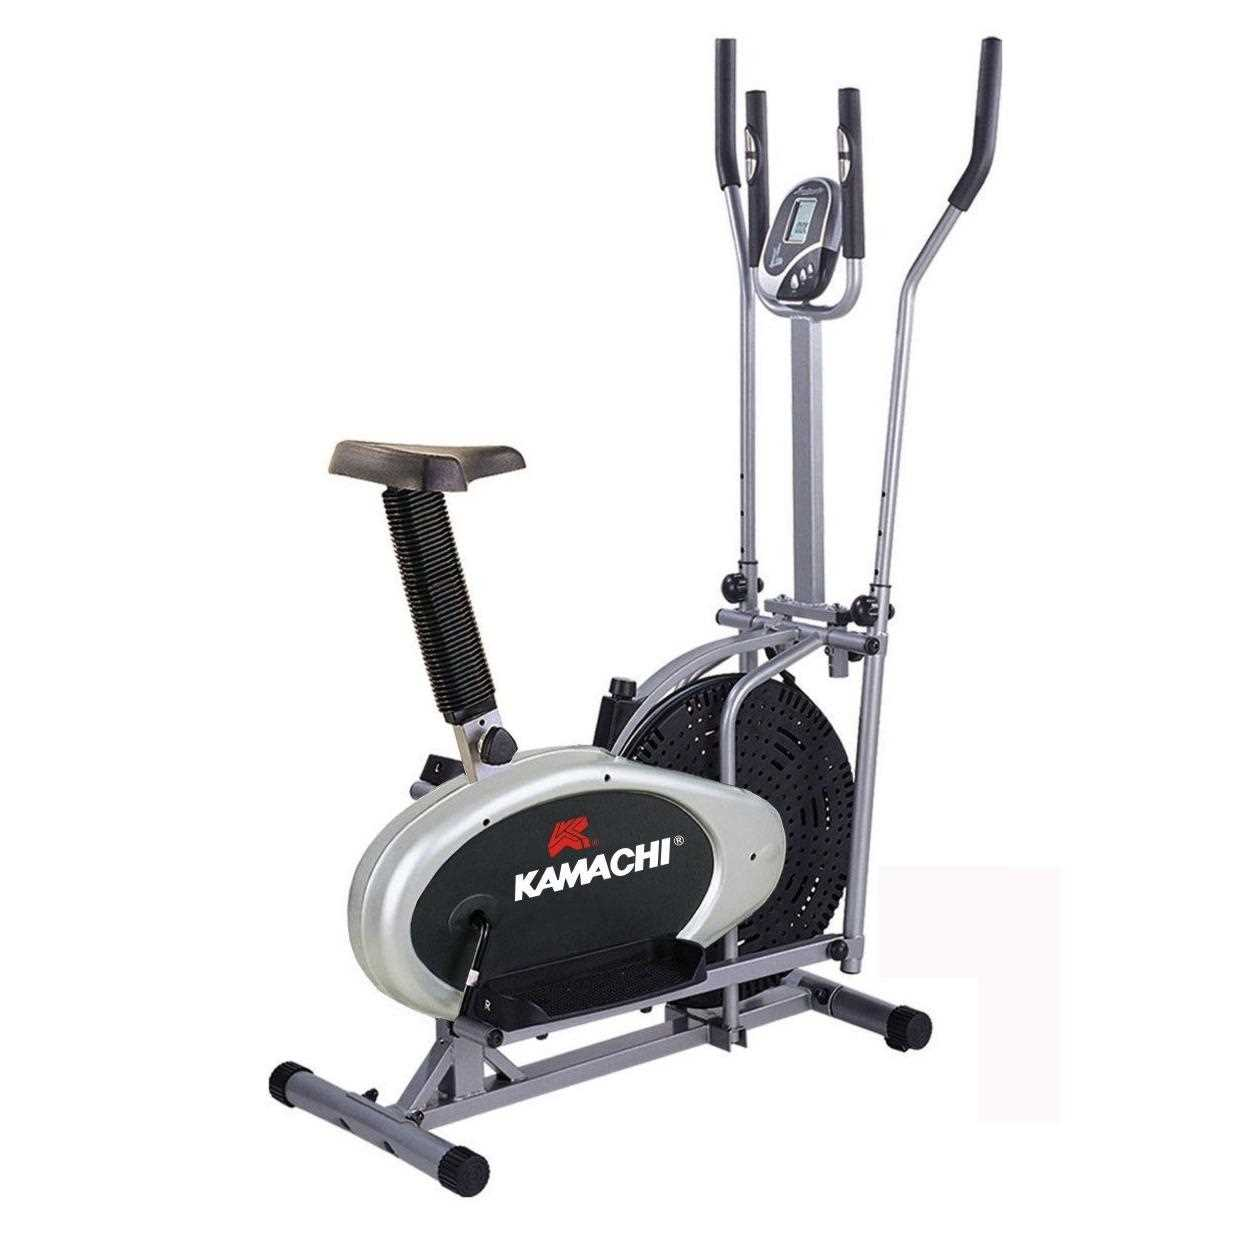 Kamachi OB 328 Elliptical Bike Price in India | 15 Feb 2017